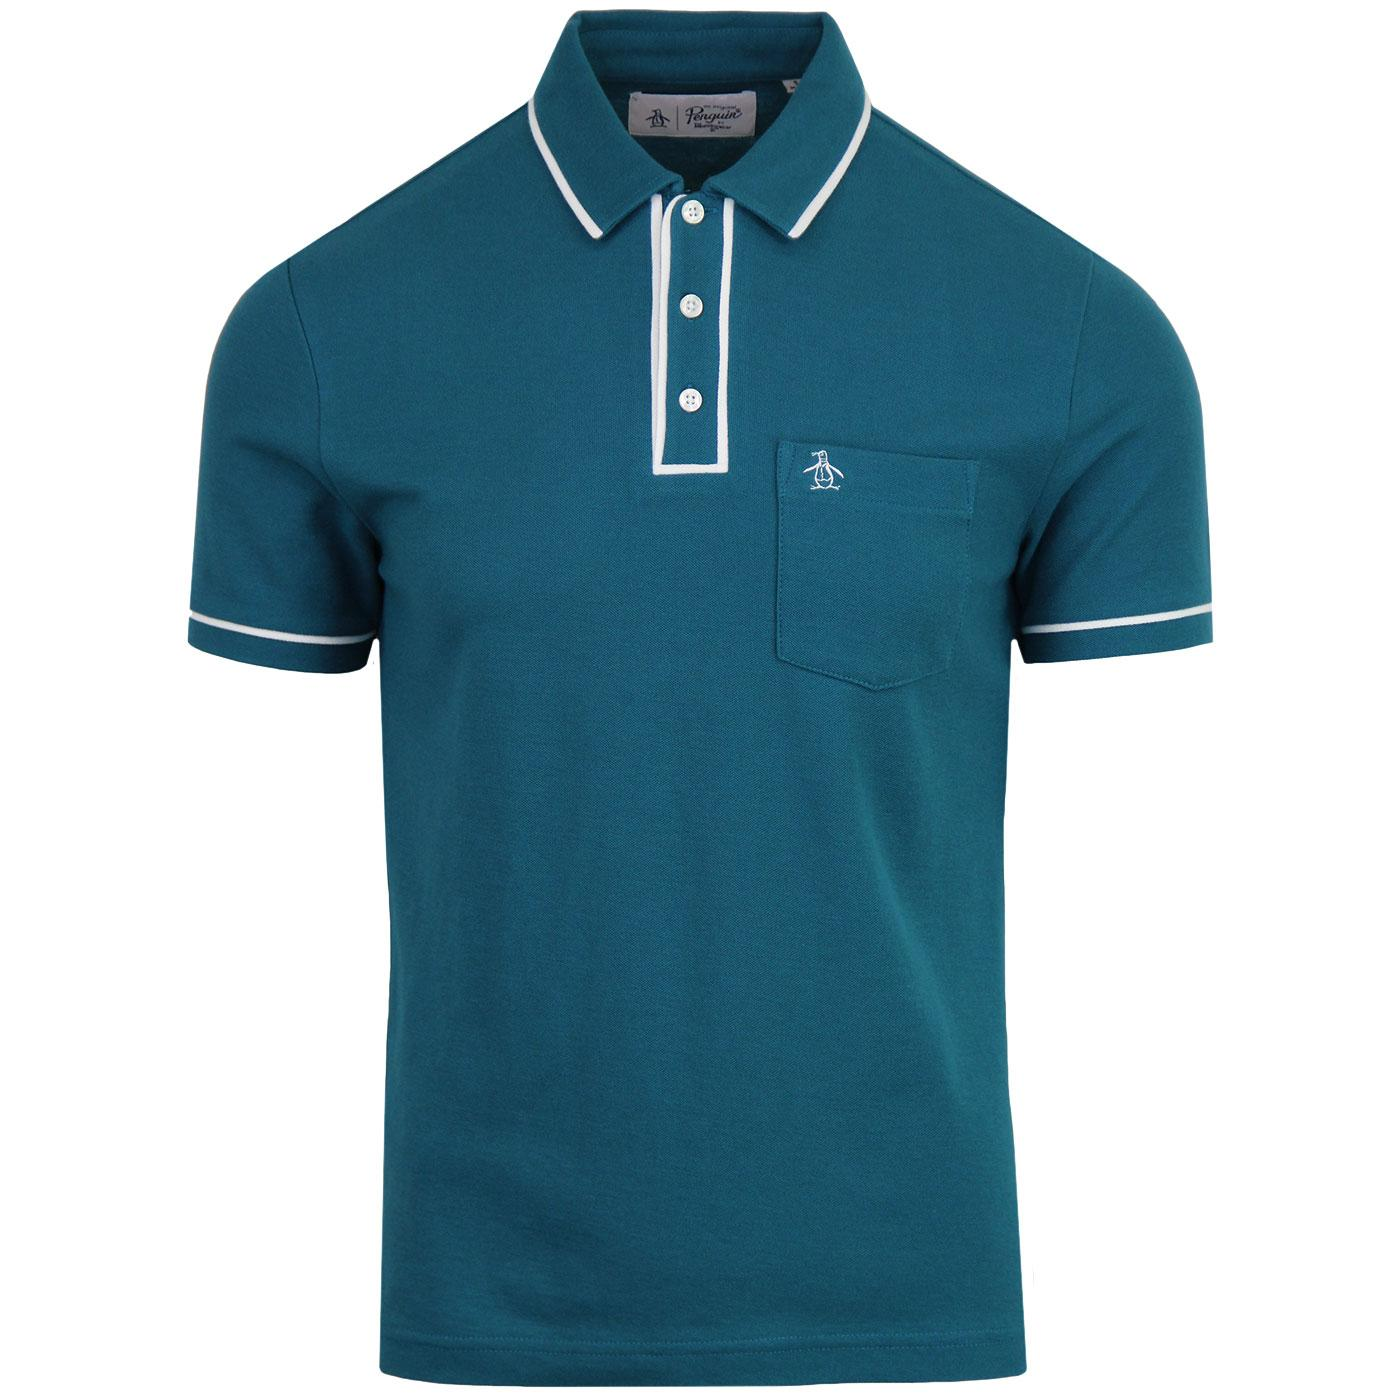 Earl ORIGINAL PENGUIN 60s Mod Tipped Polo Top (D)